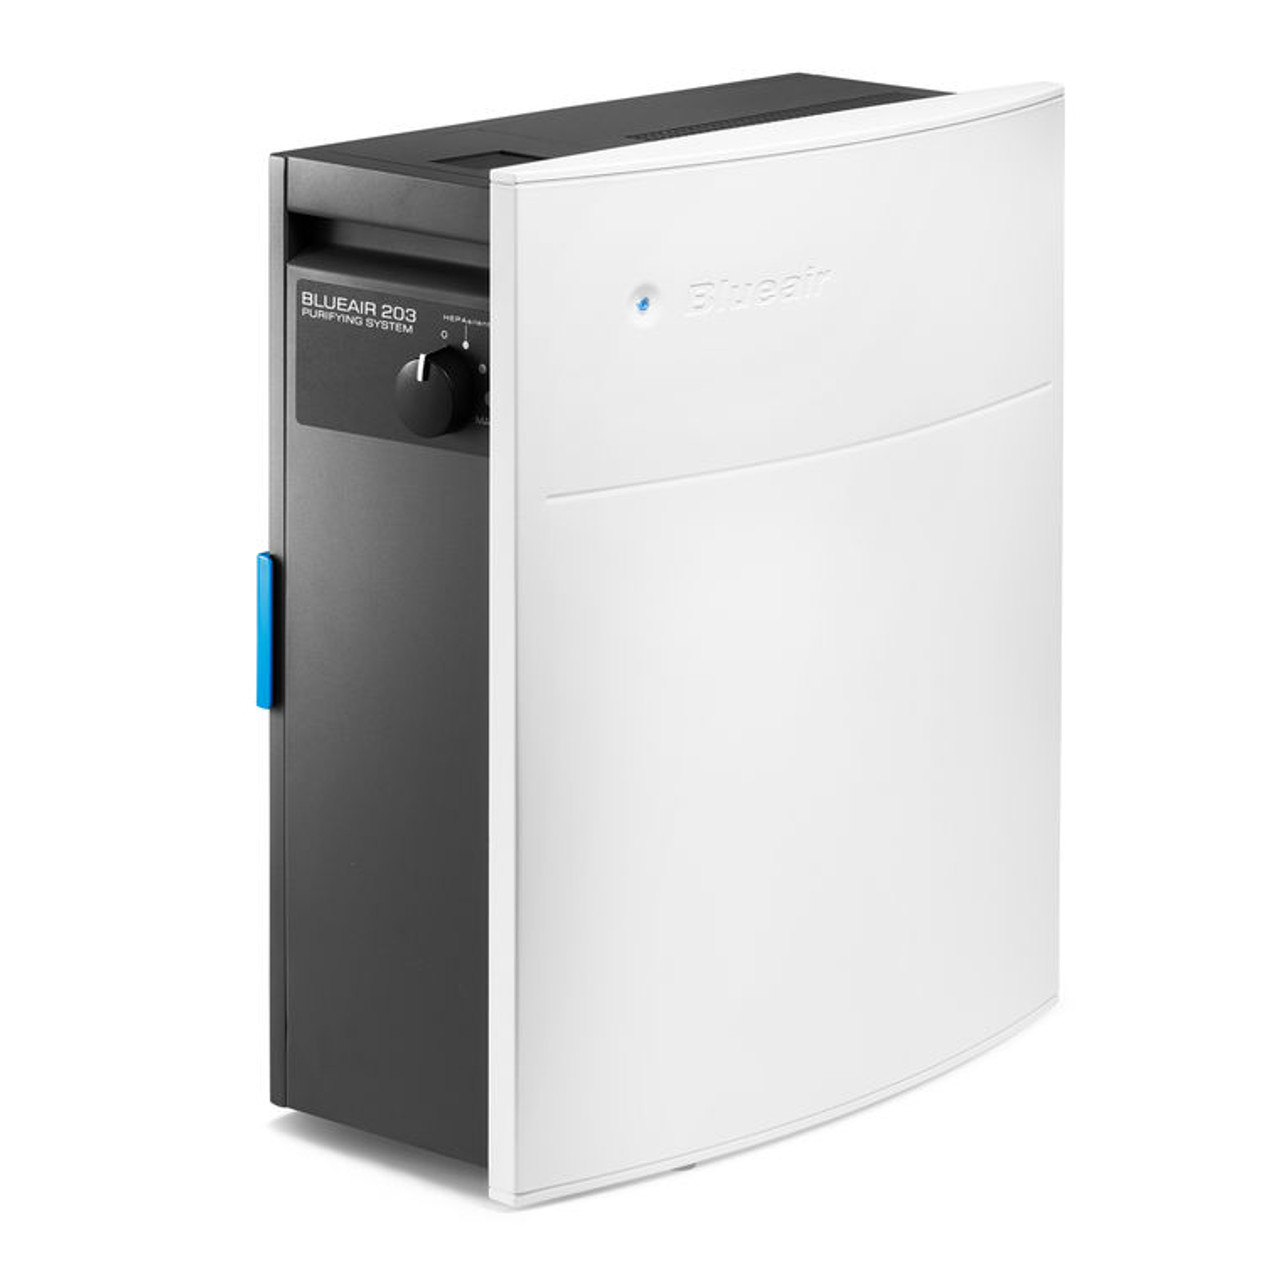 Blueair 203 Slim Air Cleaner with Particle Filter